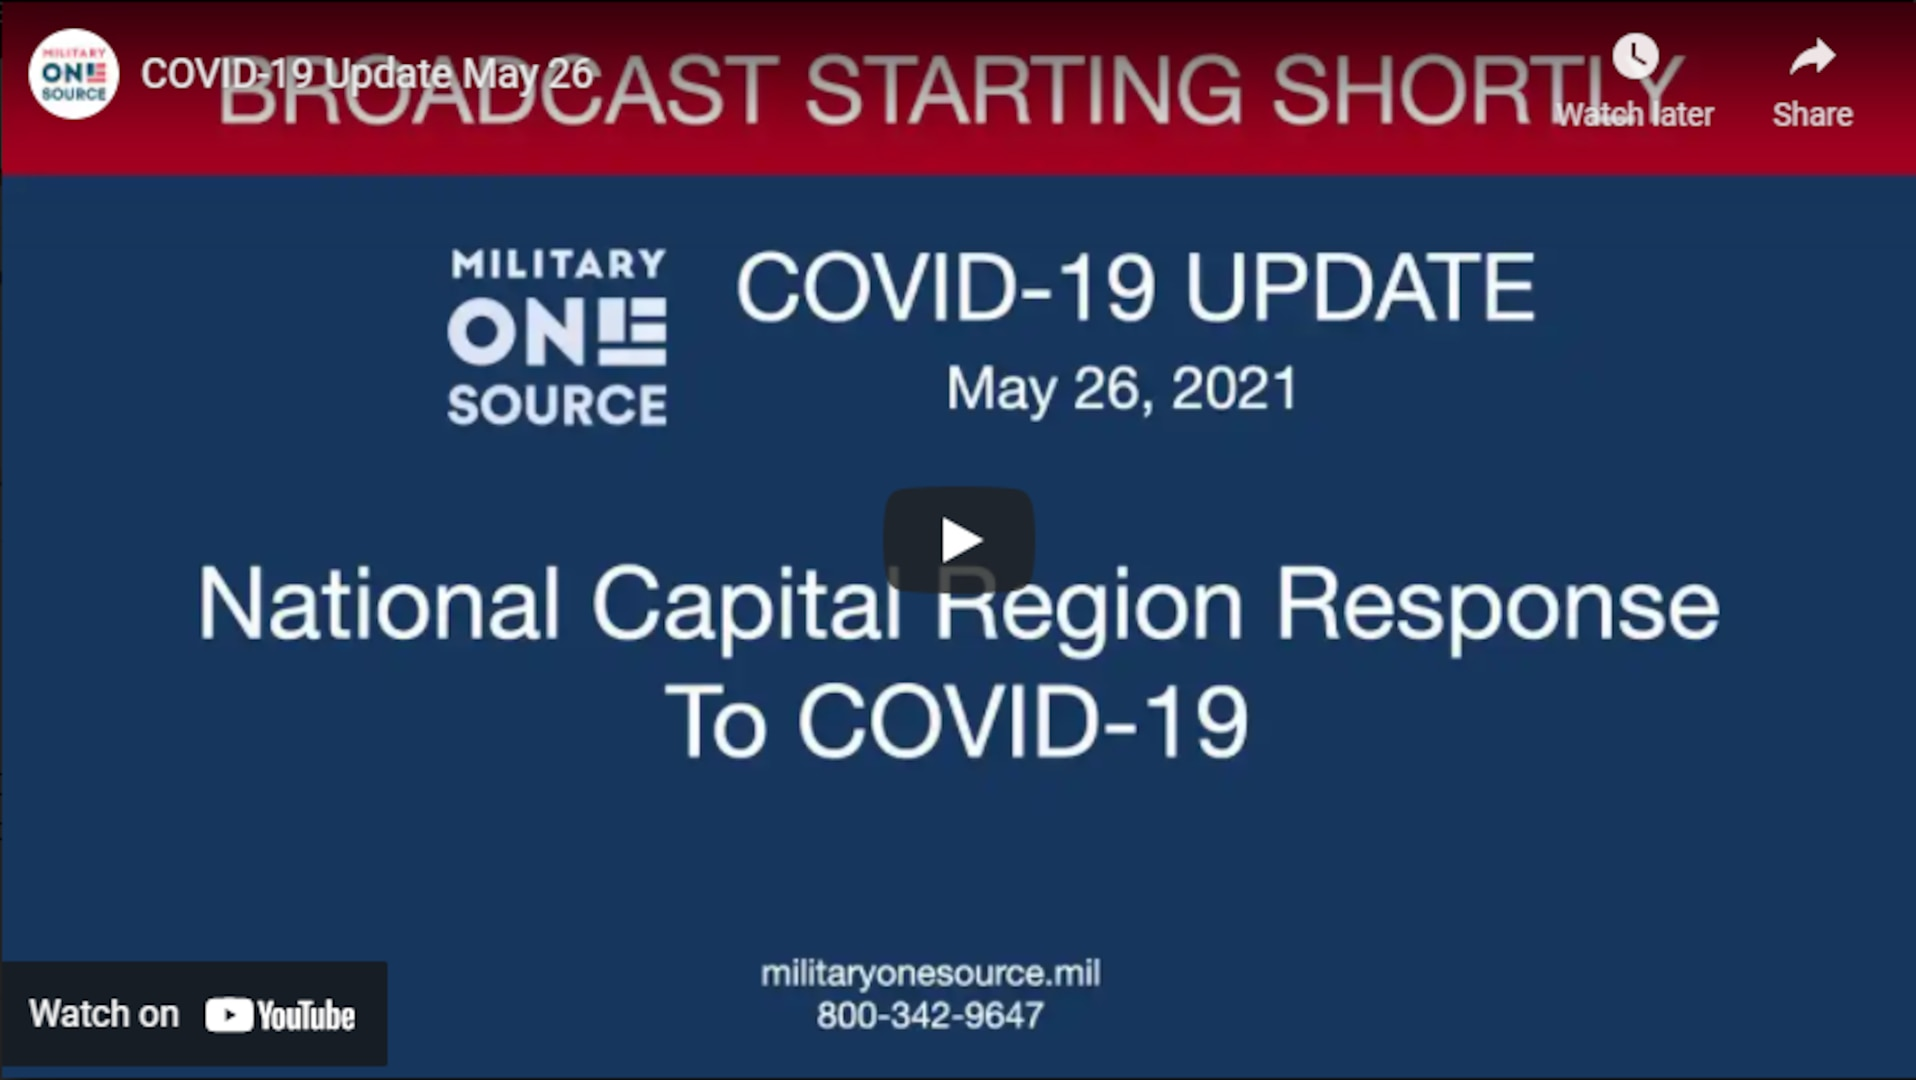 Join us for a discussion with Rear Admiral Anne Swap, who is the National Capital Region market director at the Defense Health Agency. We'll take a closer look at the National Capital Region's efforts around COVID-19 vaccine distribution and the role the team plays in the fight against the pandemic.